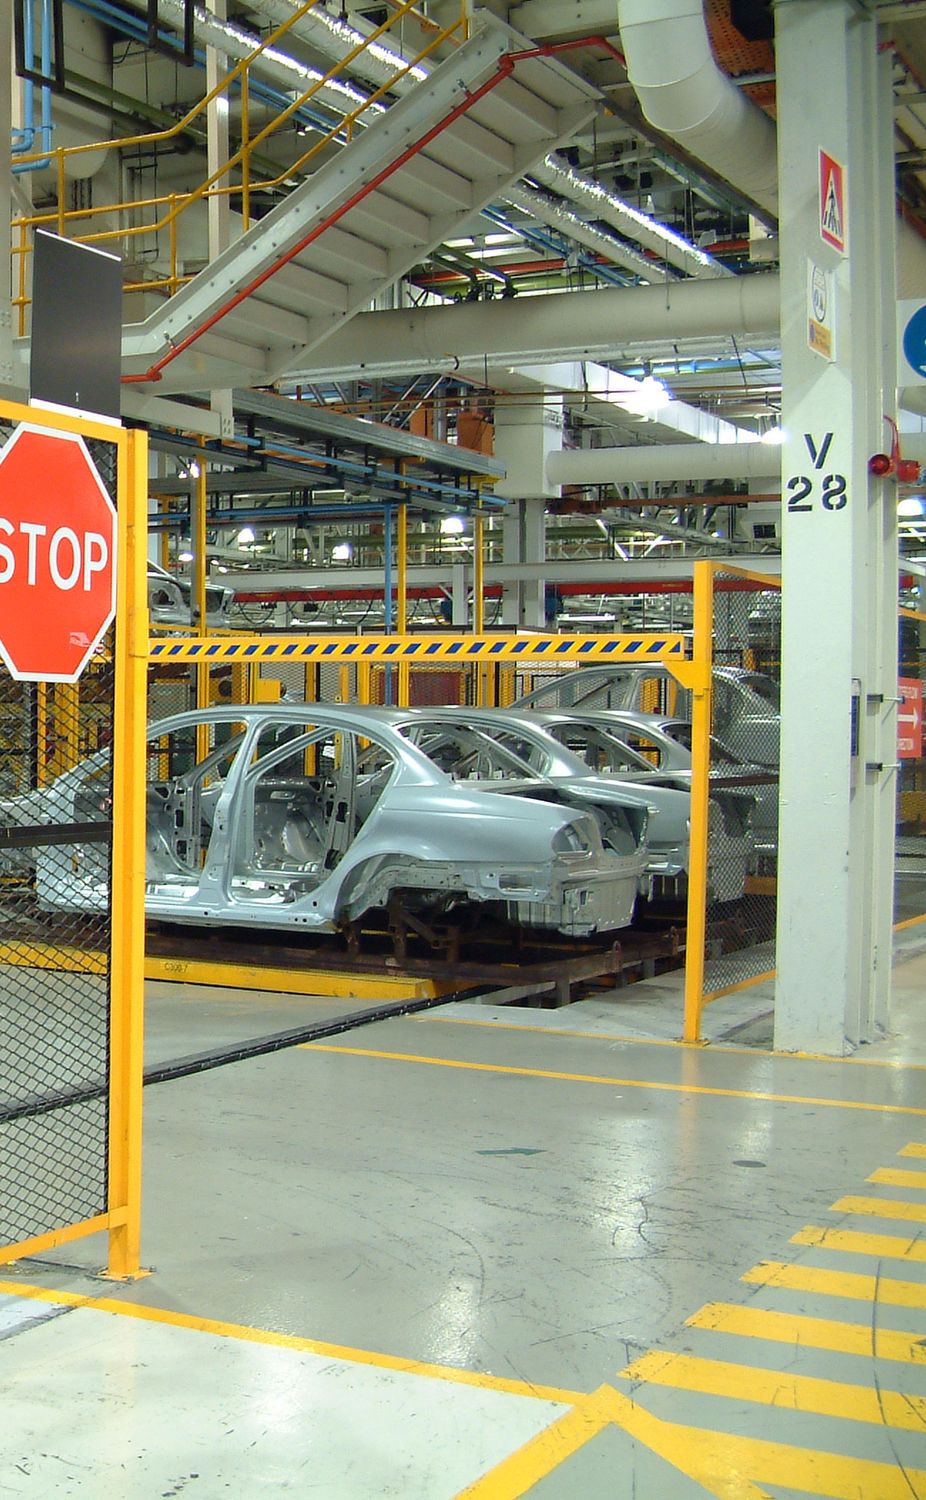 Quality drive components ensure long term reliability in automotive assembly